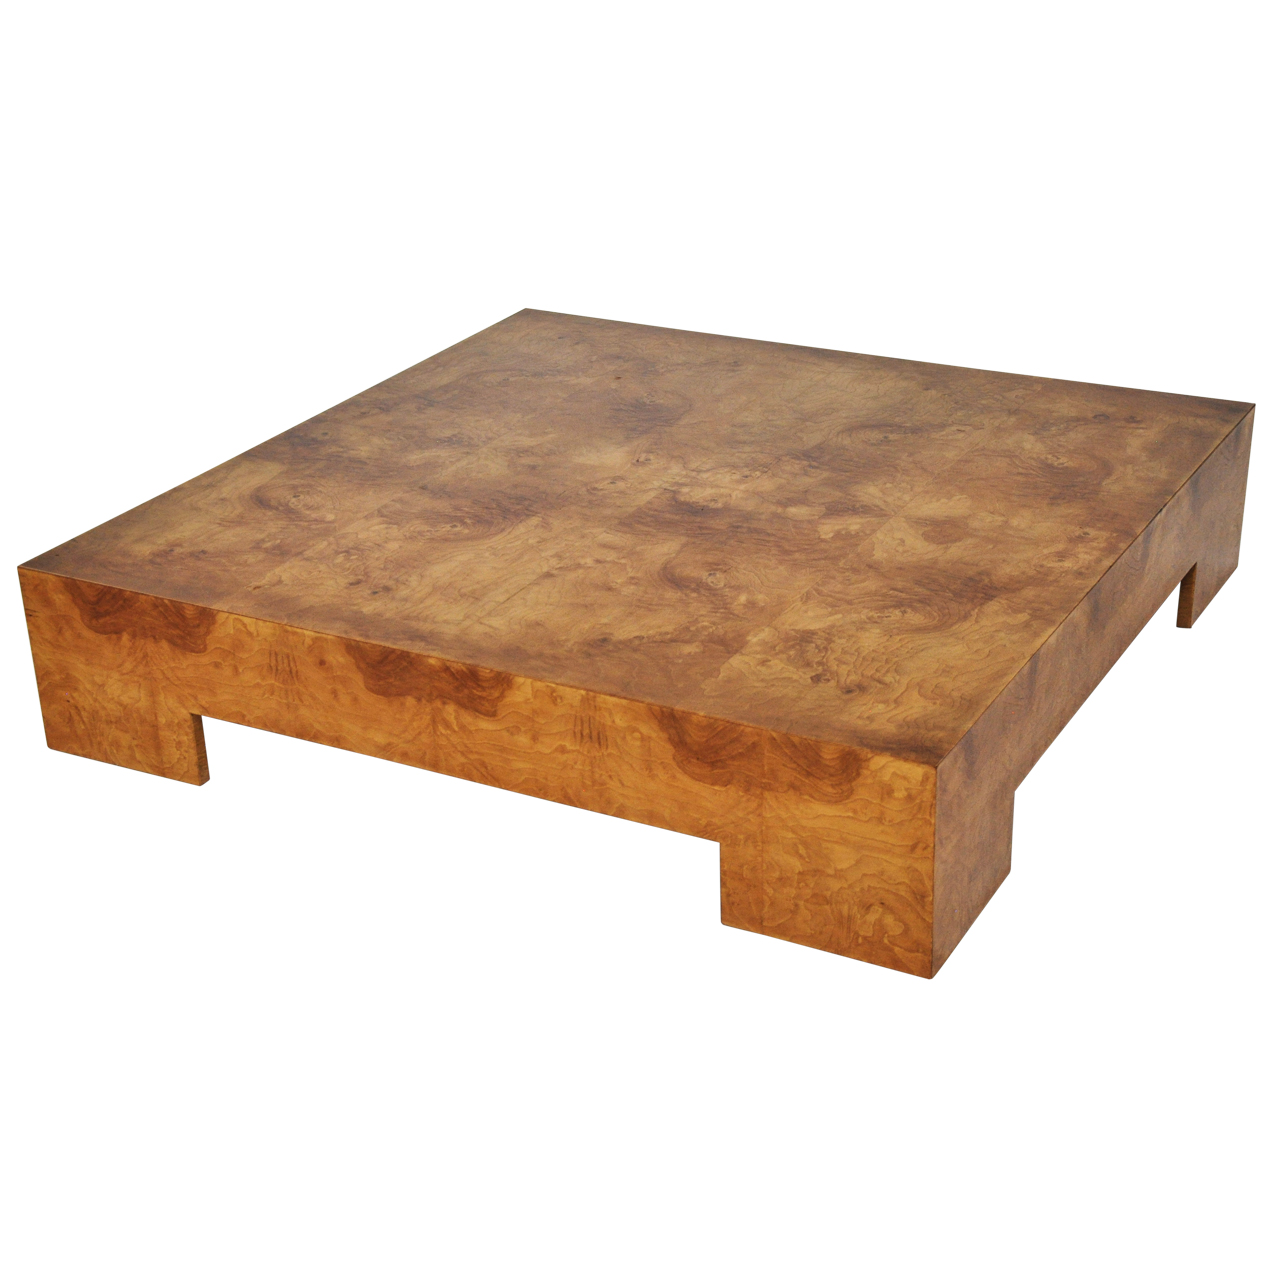 Bon Milo Baughman Low Burl Wood Coffee Table